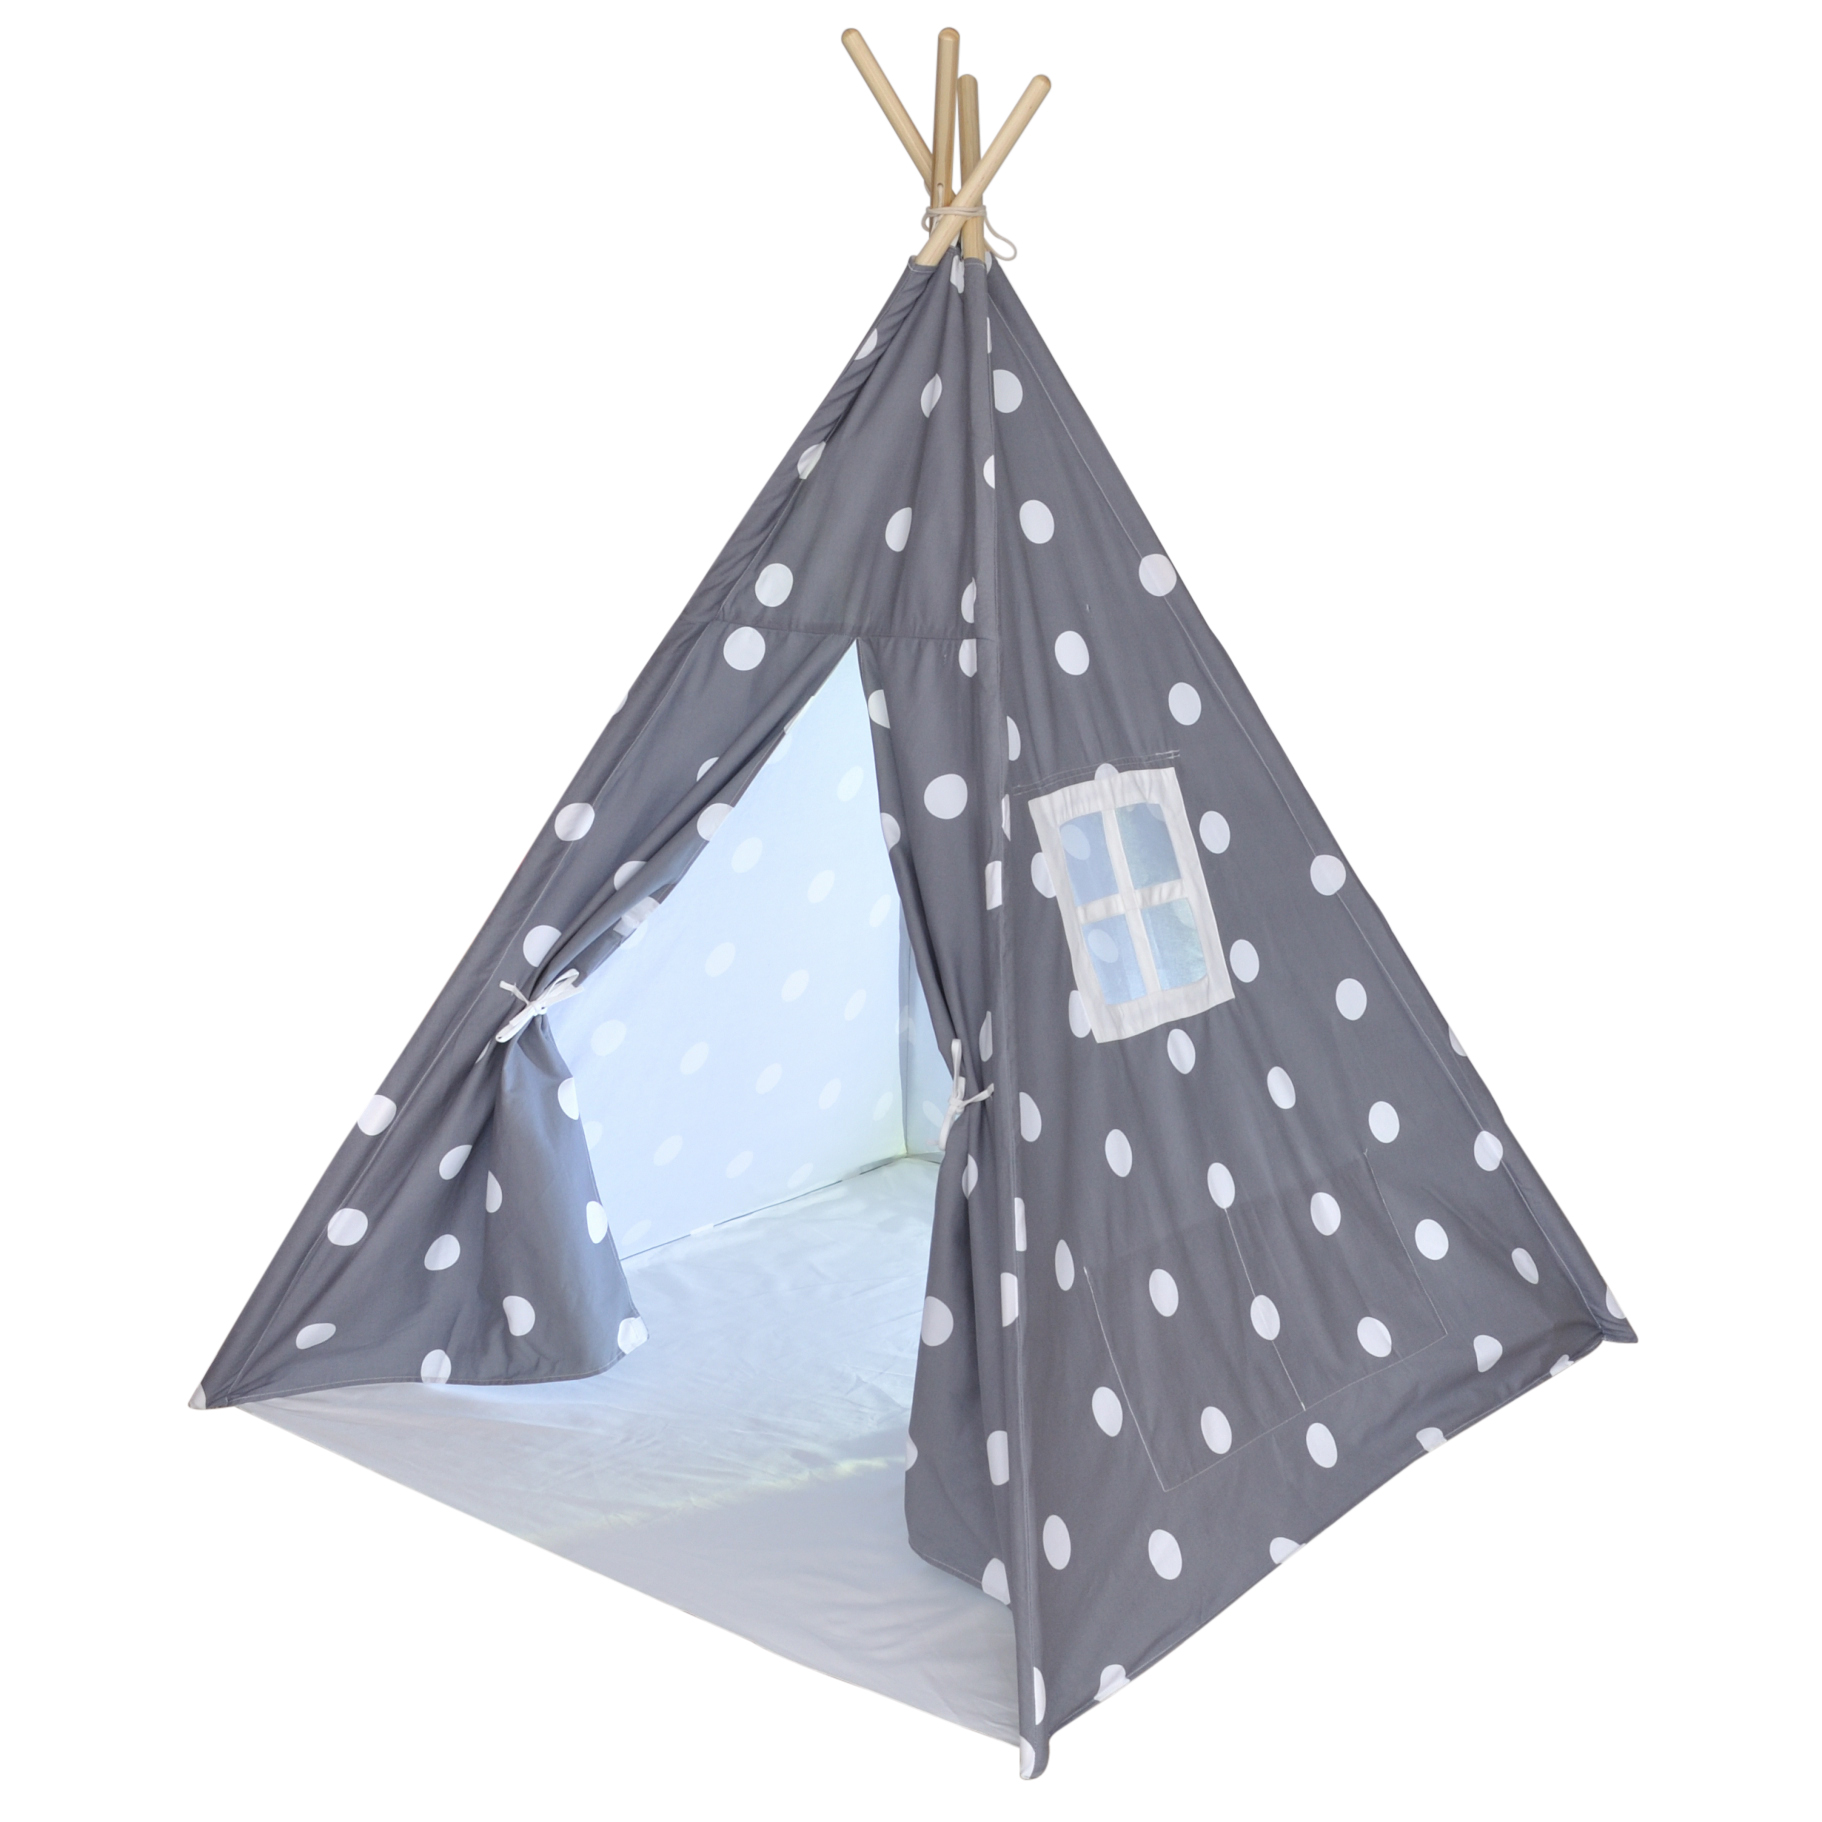 Home / Shop / Pretend Play / A Mustard Seed Toys Canvas Teepee Tent Gray with White Dots No Added Chemicals Includes Carrying Case  sc 1 st  A Mustard Seed Toys & A Mustard Seed Toys Canvas Teepee Tent Gray with White Dots No ...